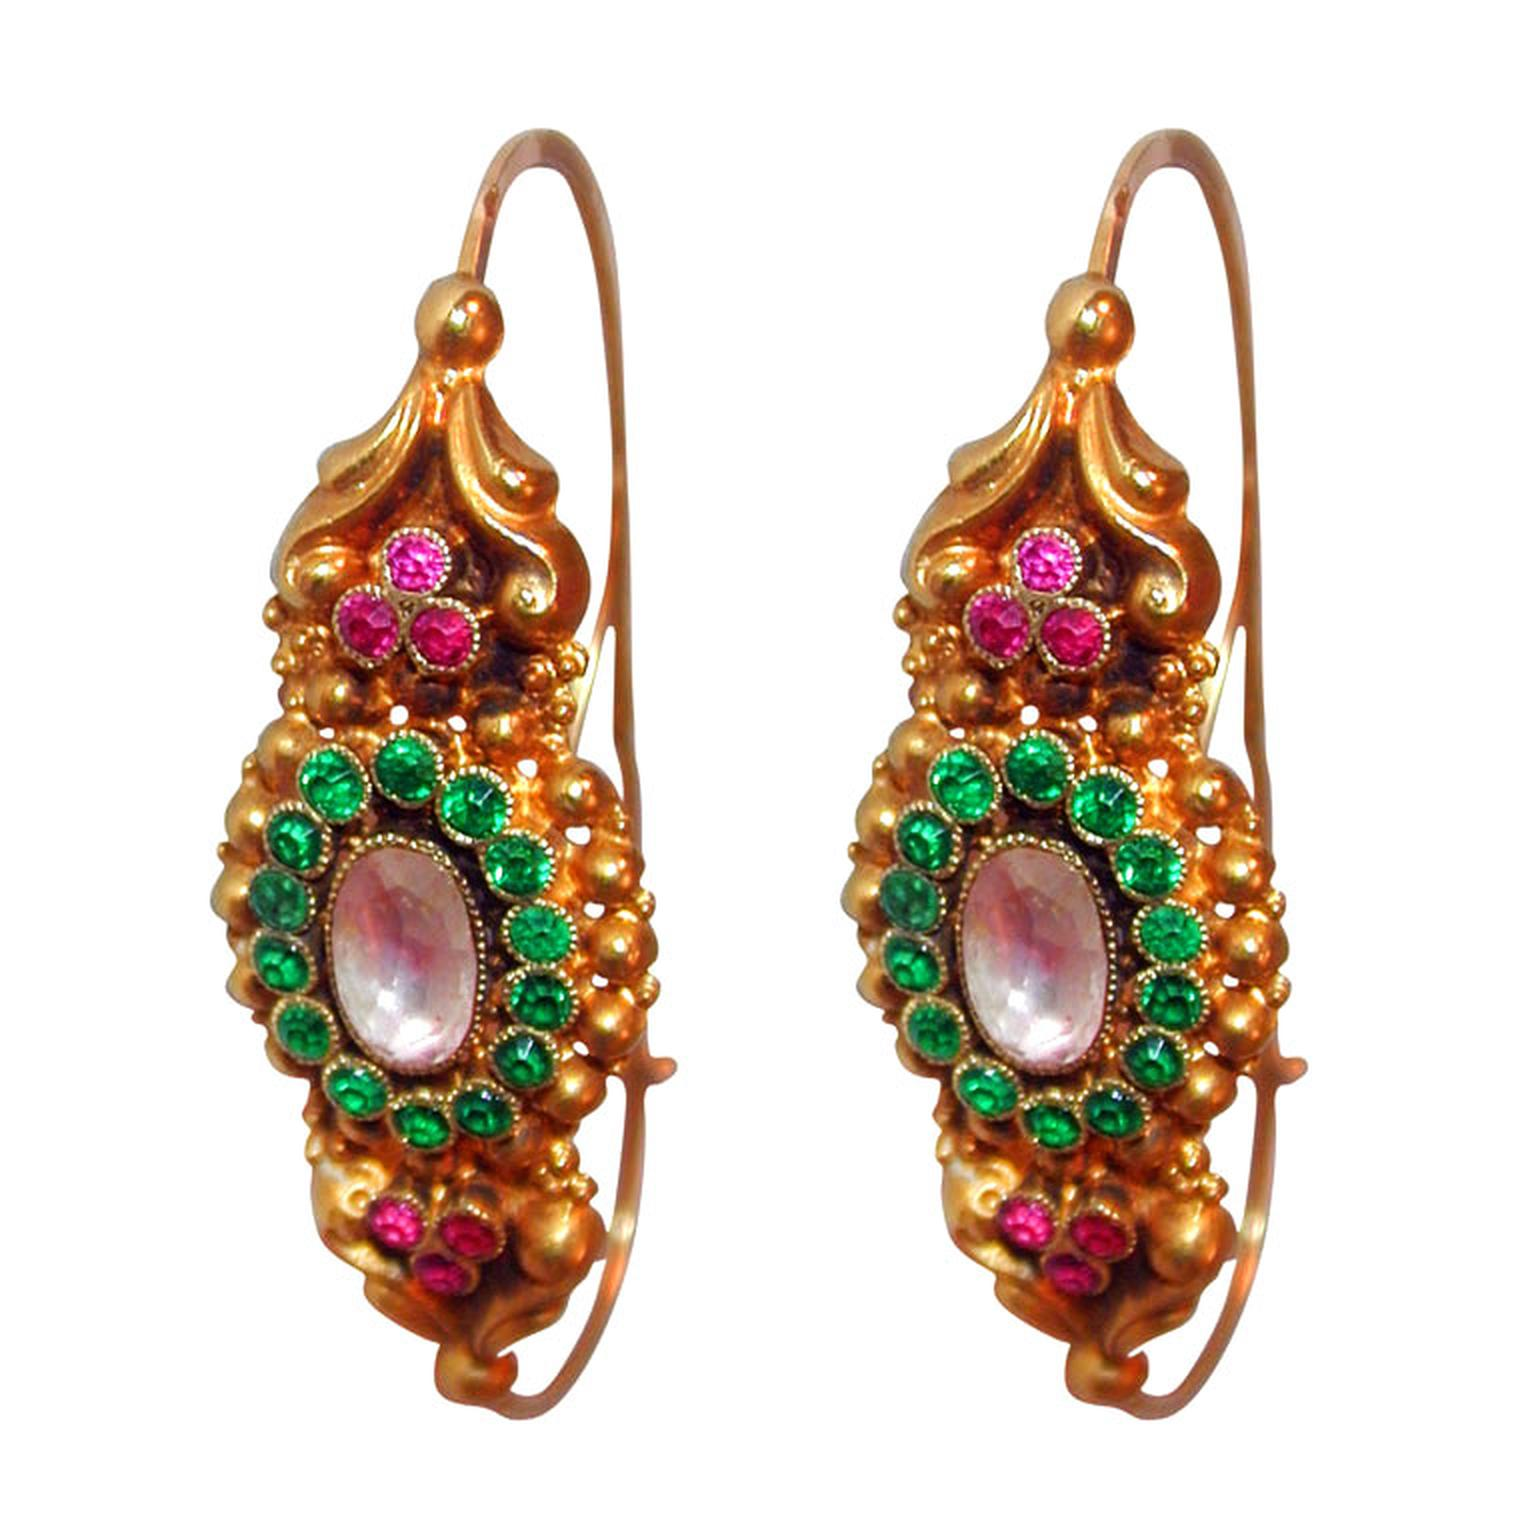 The Spare Room Antiques Iberian emerald earrings